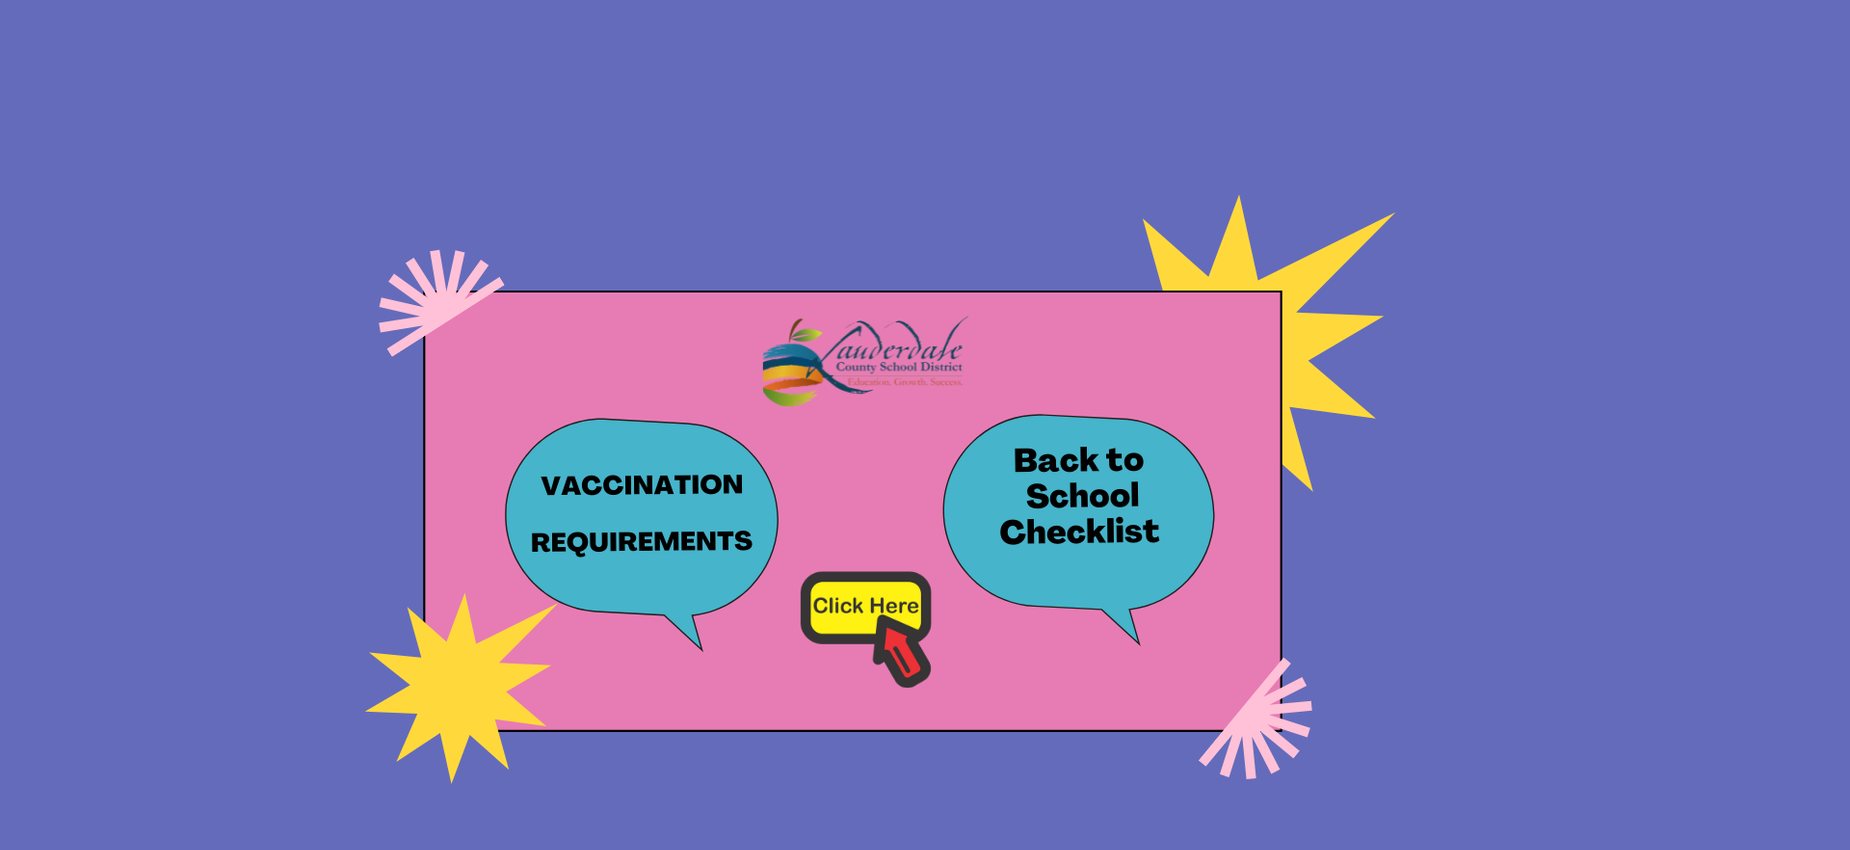 Vaccination Requirements